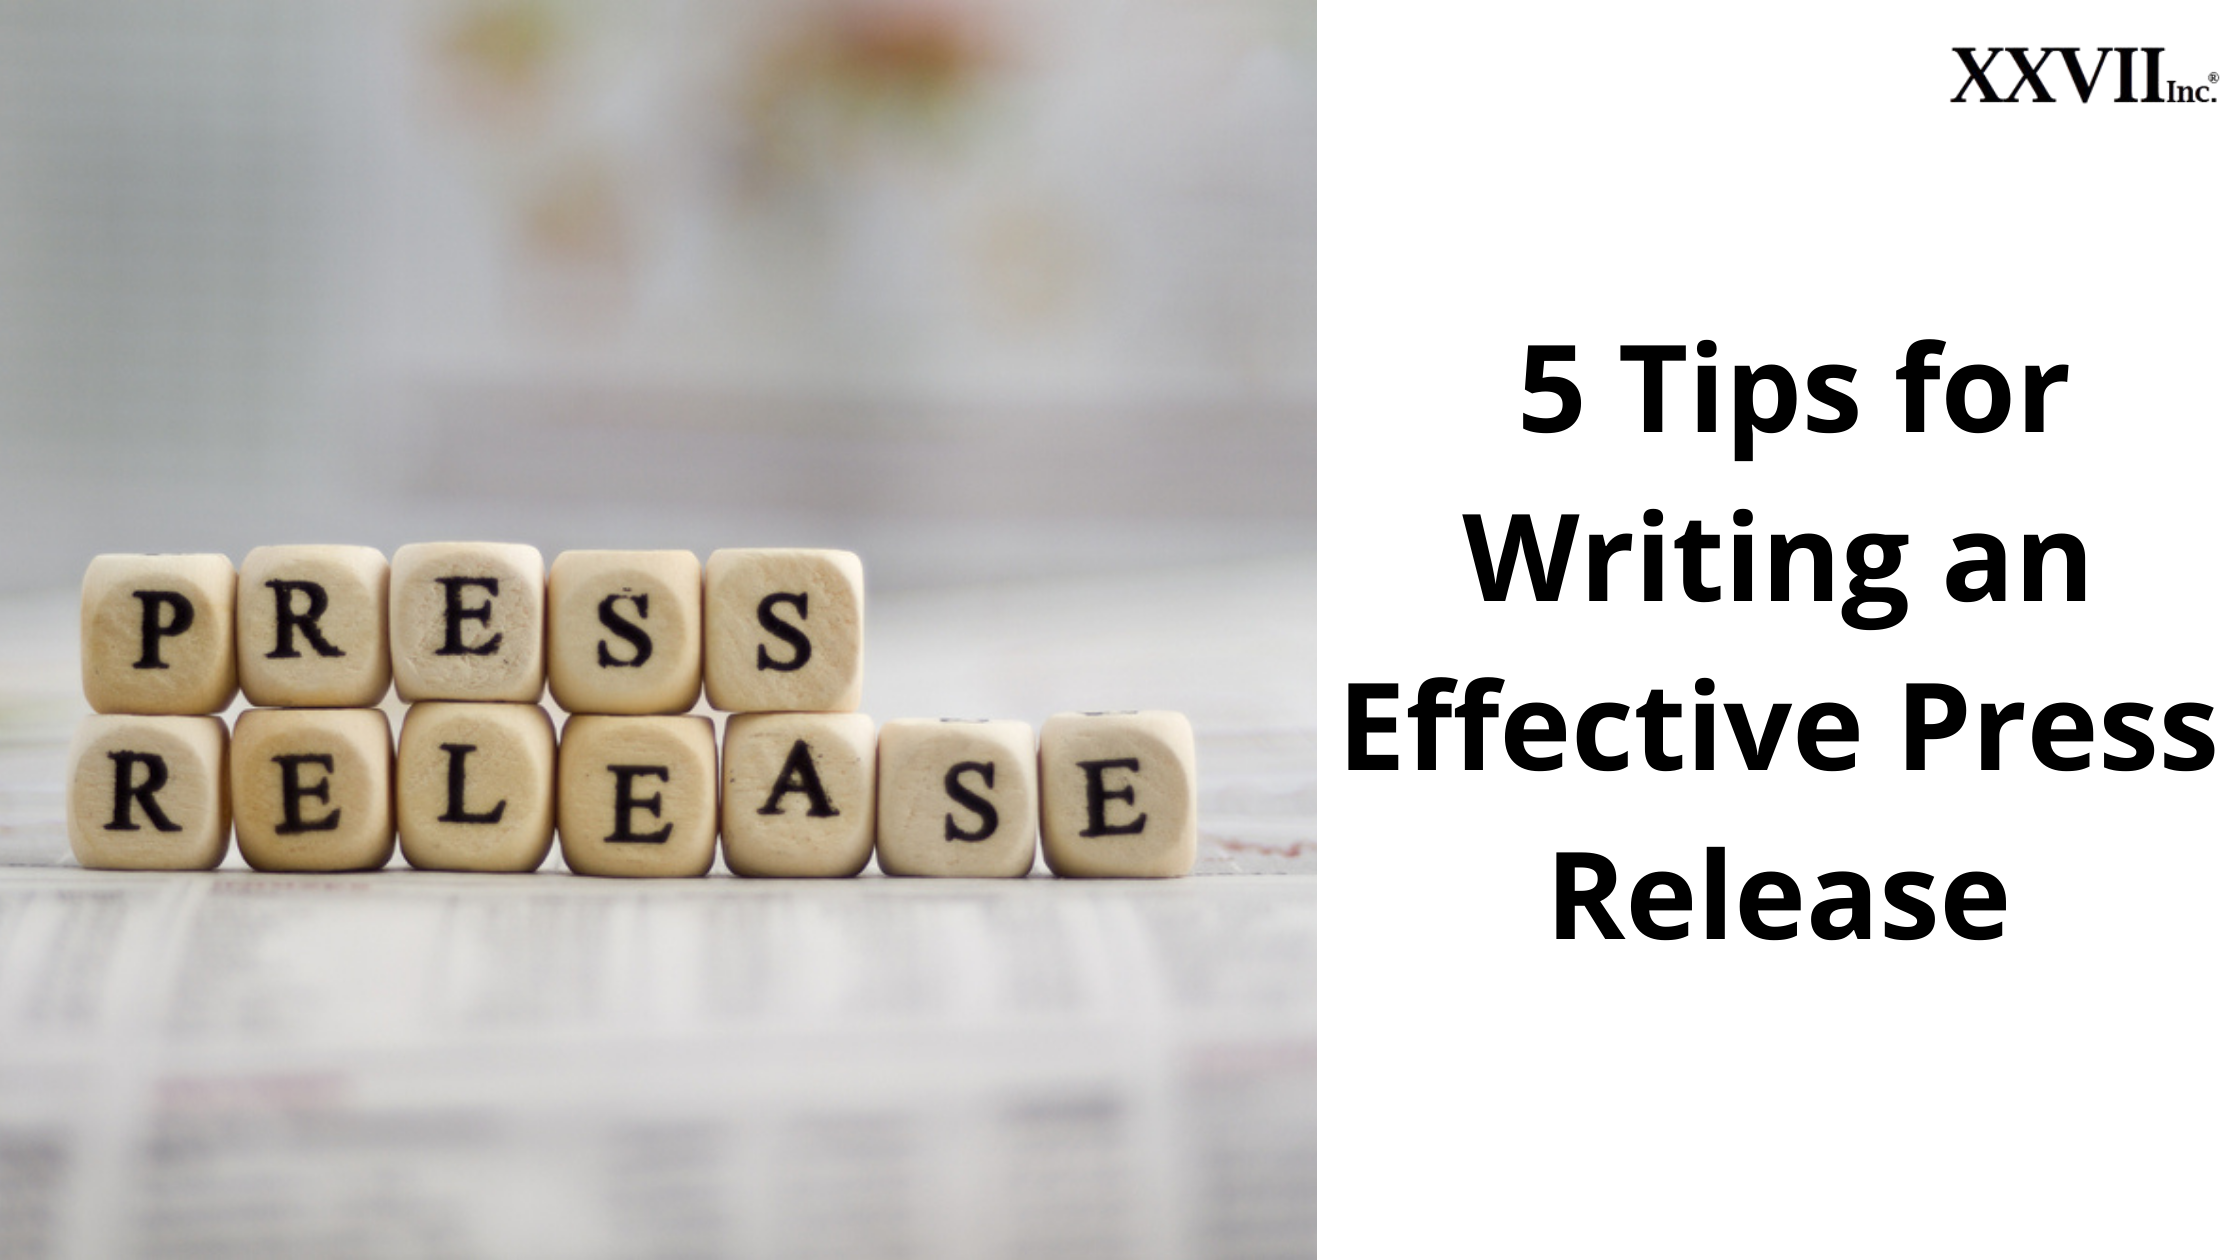 5 Tips for Writing an Effective Press Release